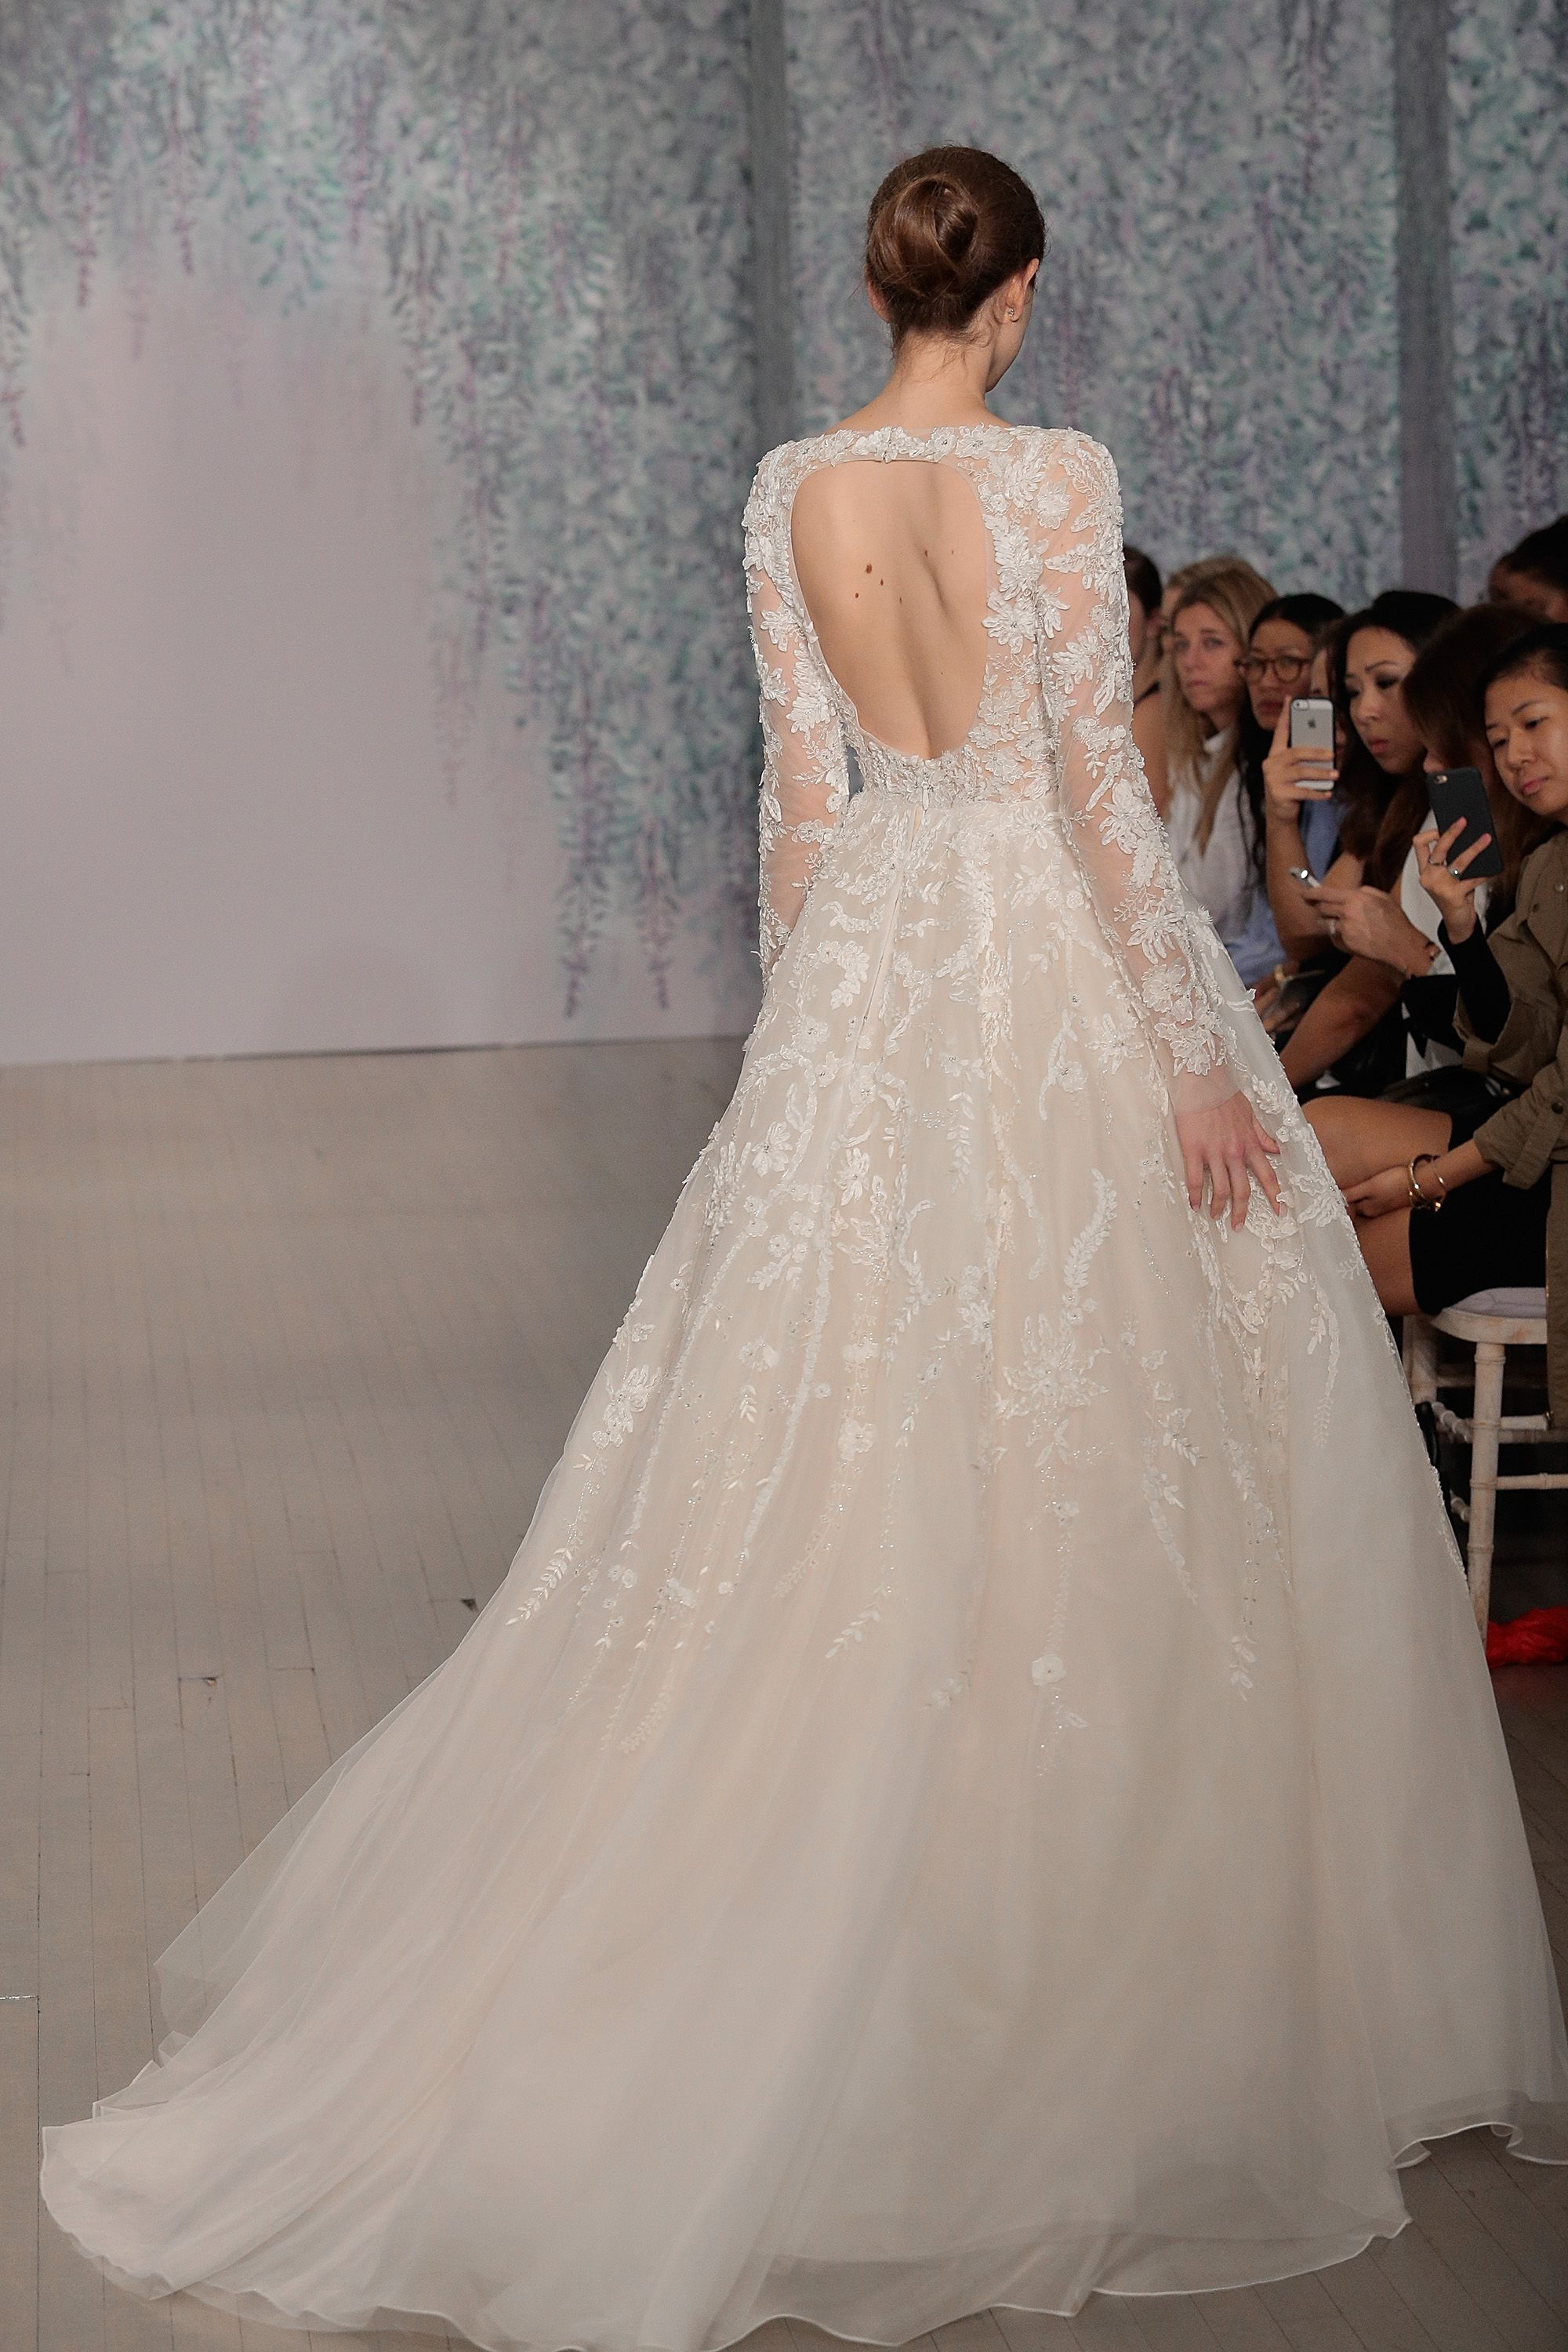 Wedding dress back   Wedding Dresses That Are Even Prettier from the Back  Wedding